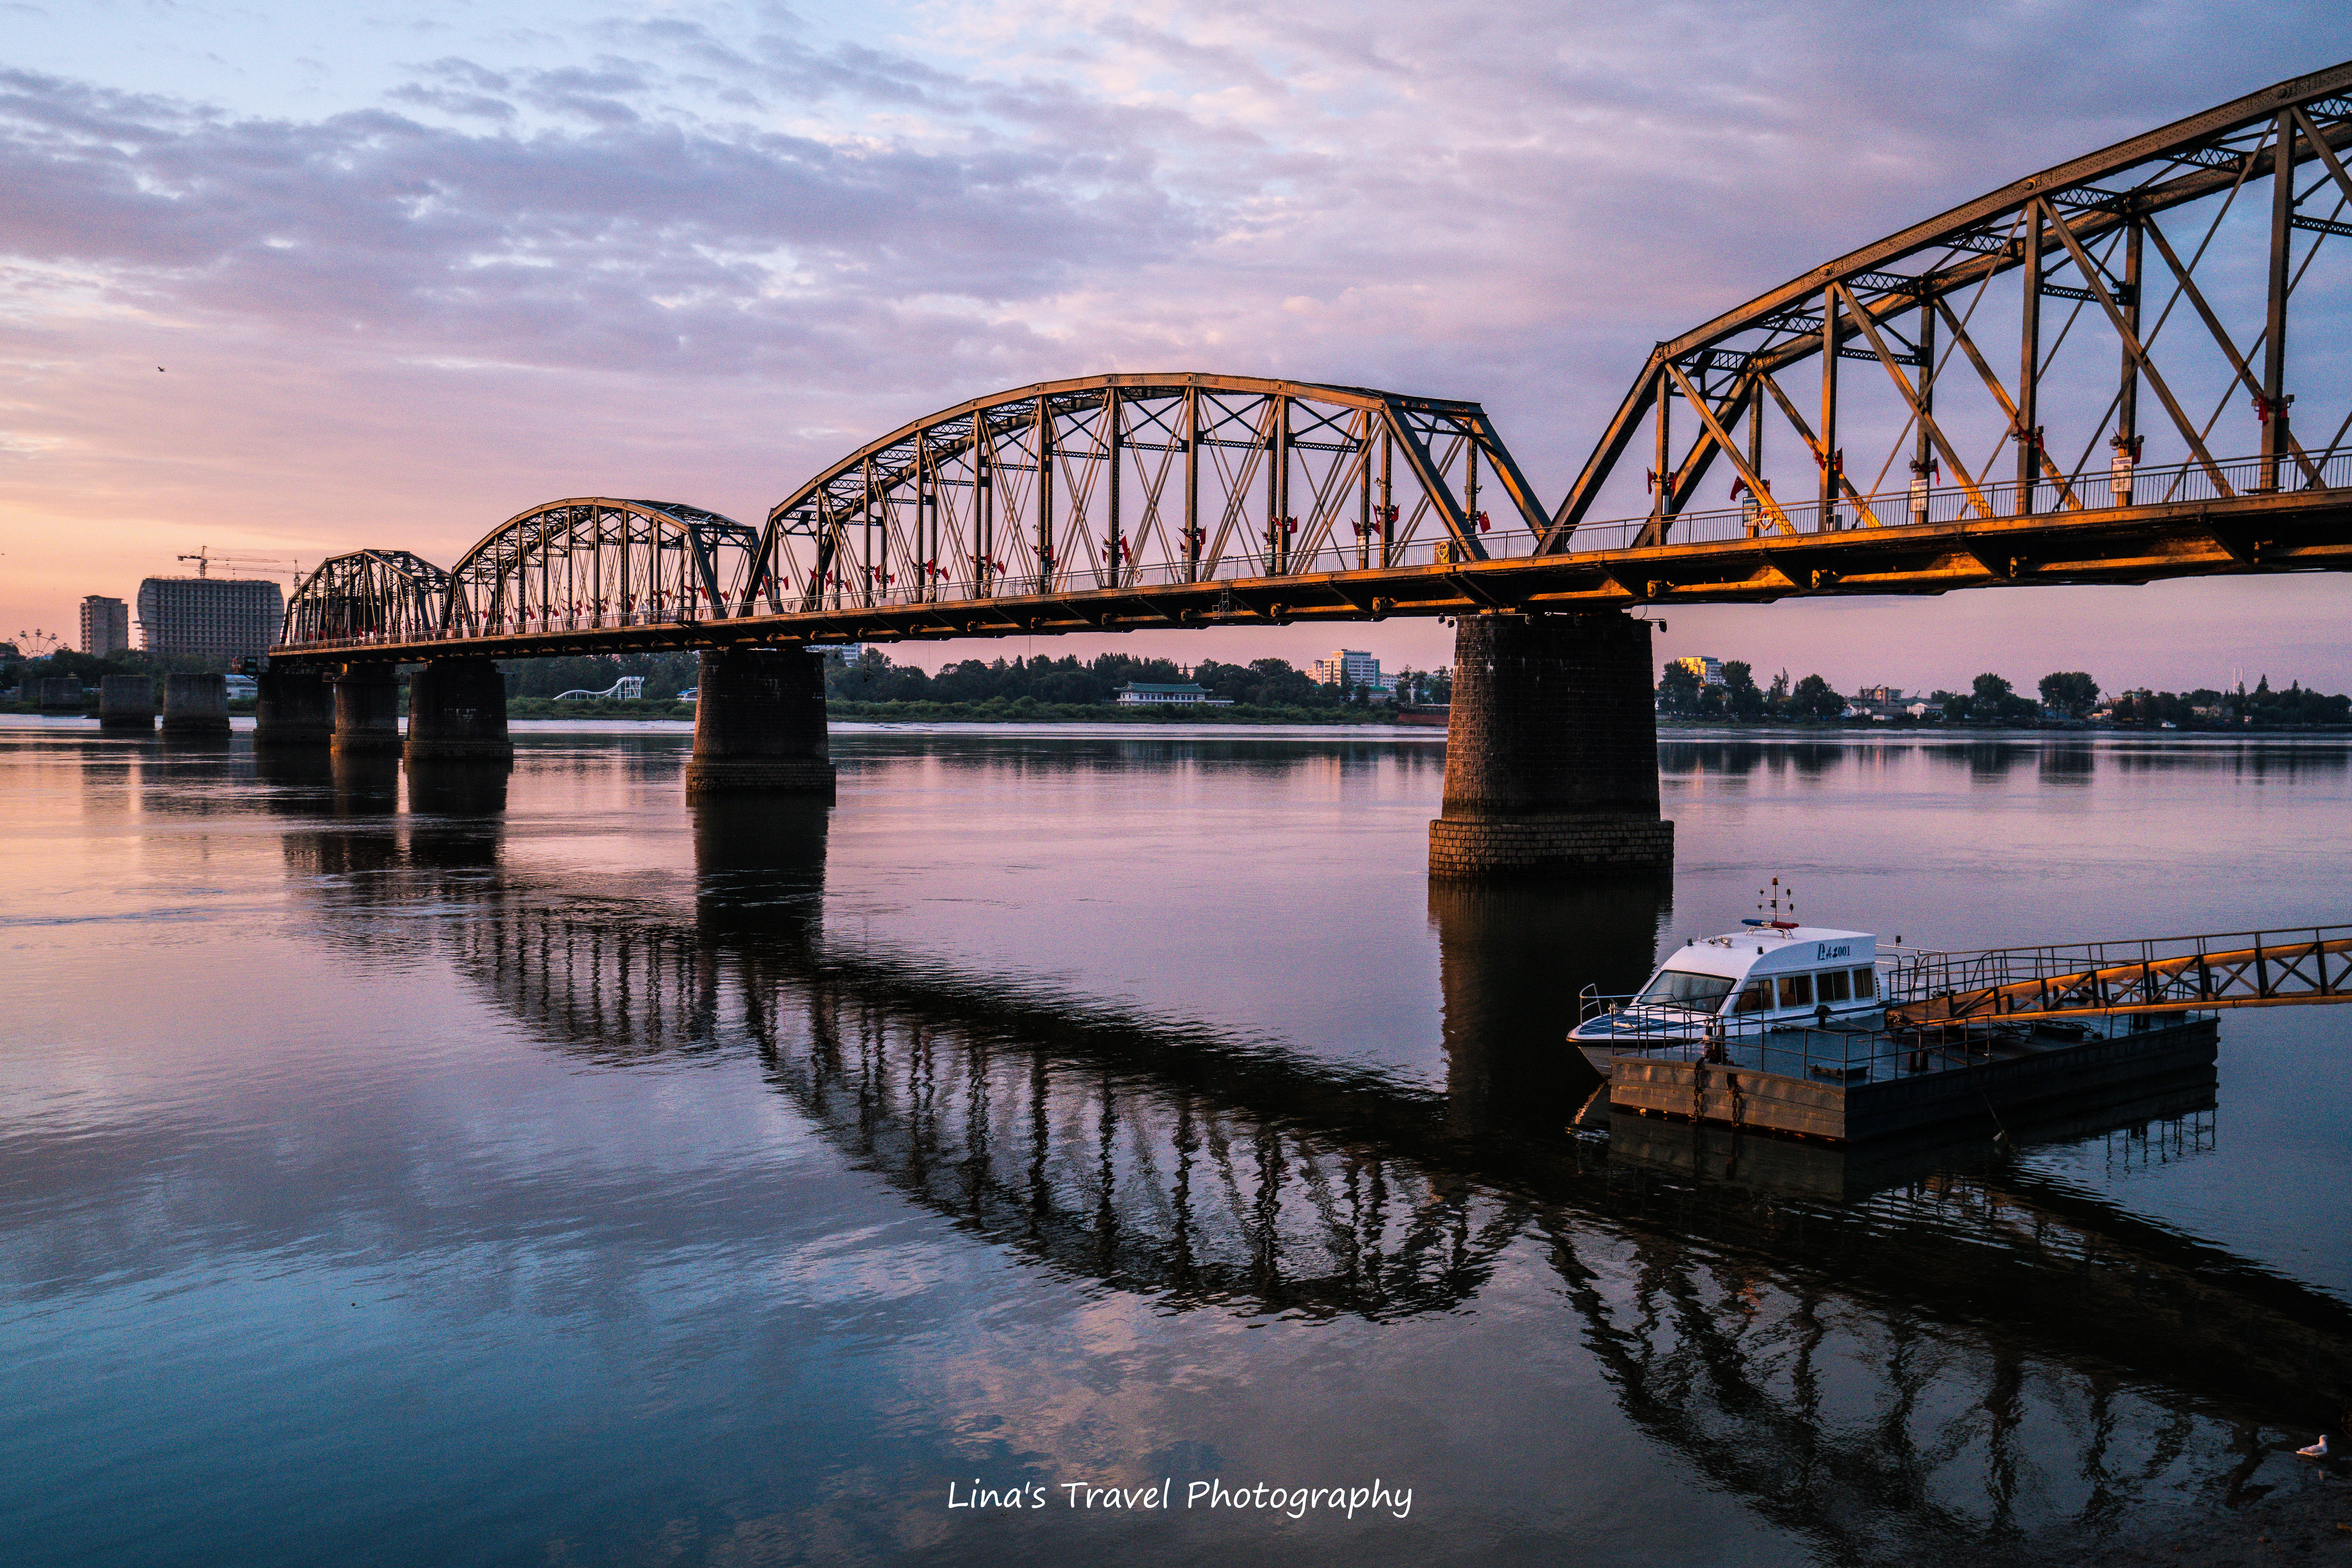 At borderline, Broken Bridge over Yalu River, Dandong, Liaoning, China//Xinuiju, North Korea (DPRK)